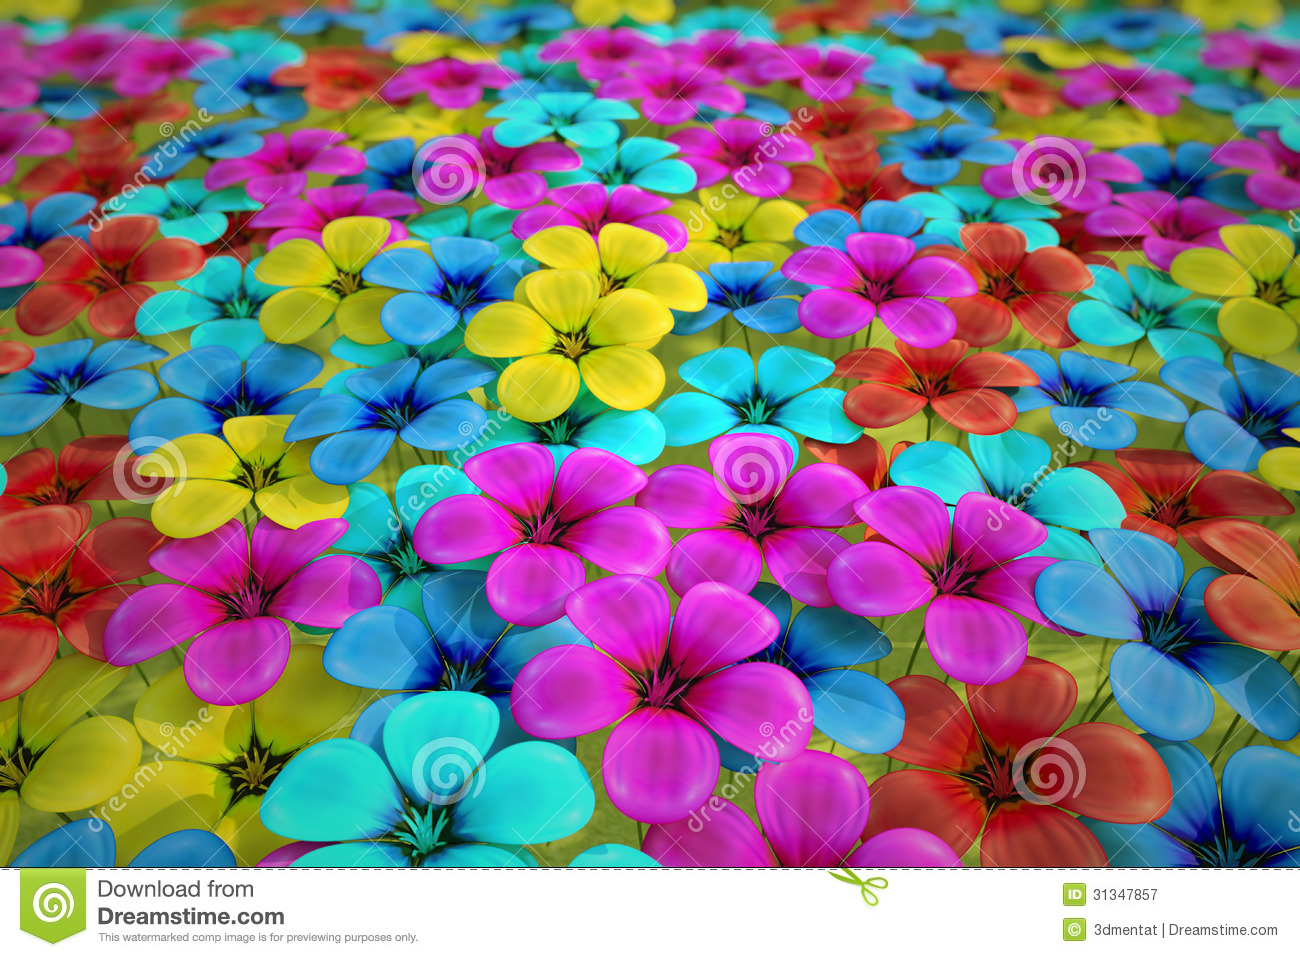 Field of flowers stock illustration illustration of macro 31347857 field of flowers izmirmasajfo Images